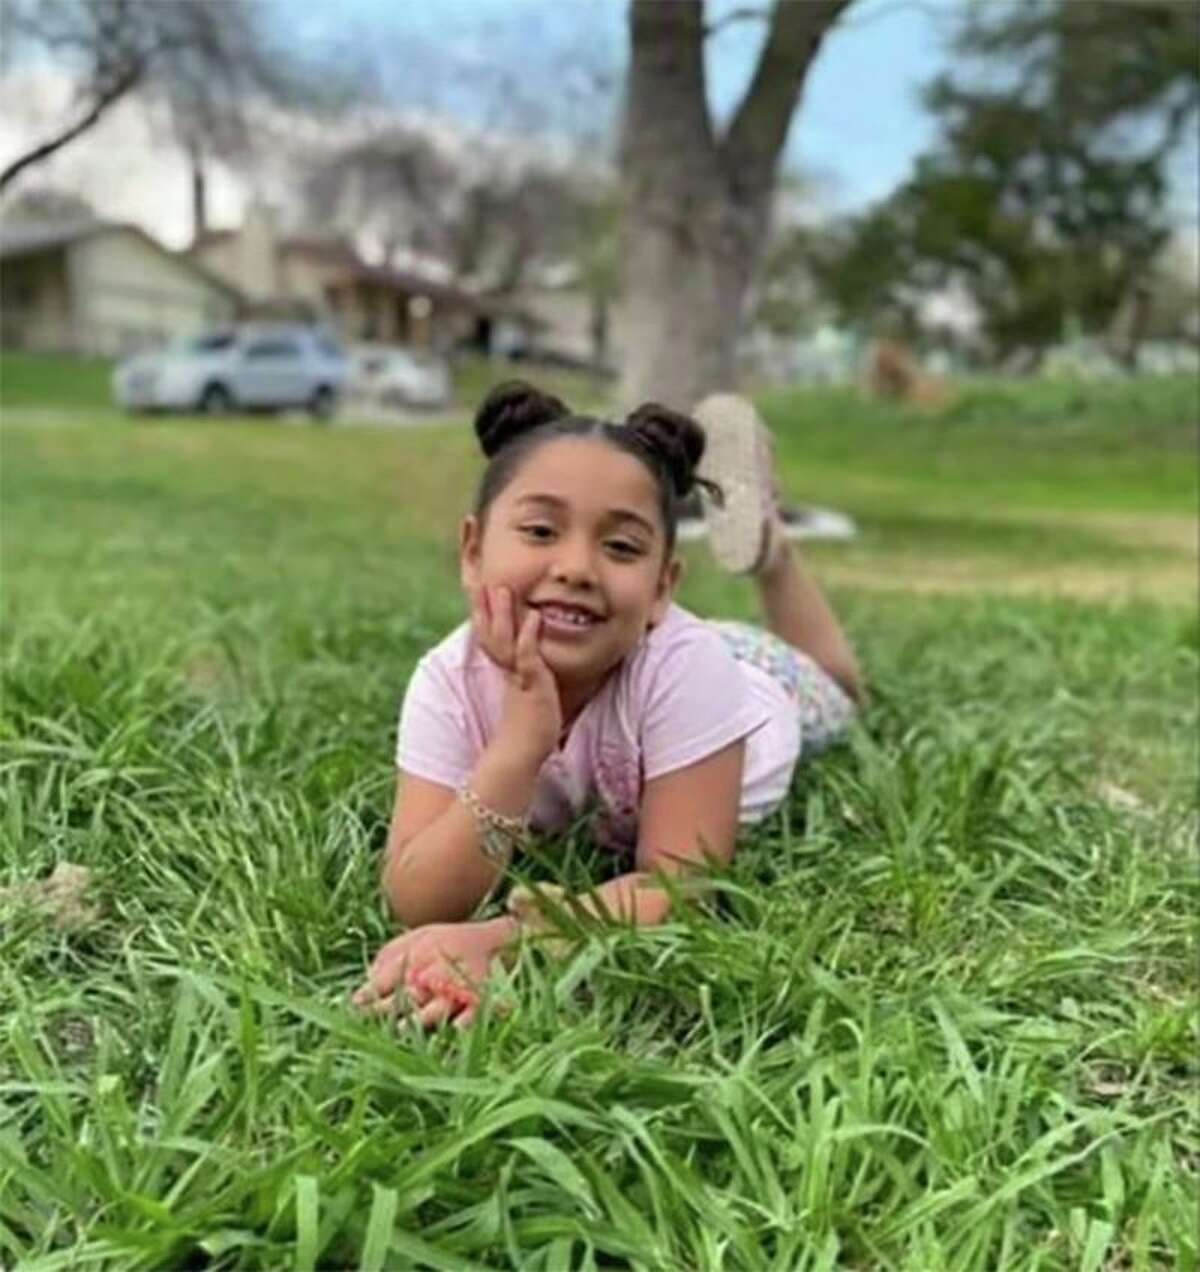 Saryah Perez, 6, was killed in a shooting May 9 at a car club gathering on the West Side.